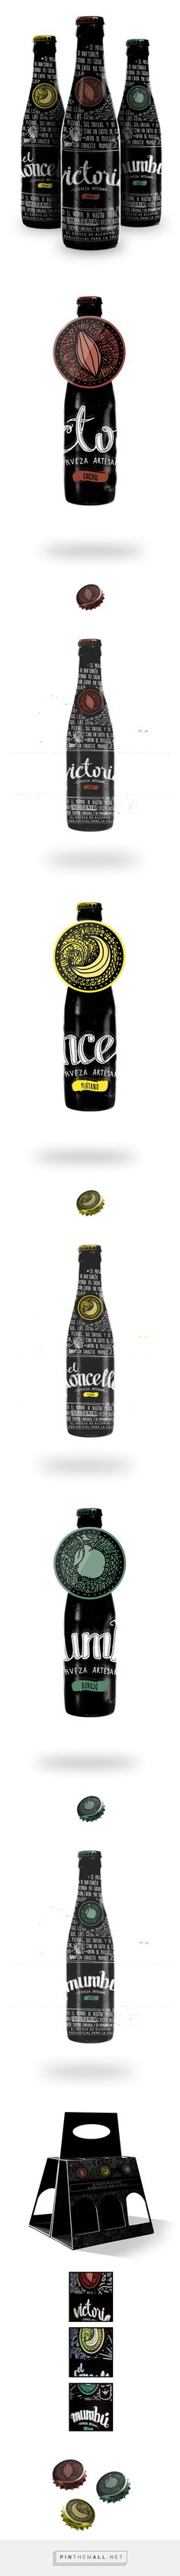 Cerveza Artesanal on Behance curated by Packaging Diva PD. Artesanal beer packaging collection.